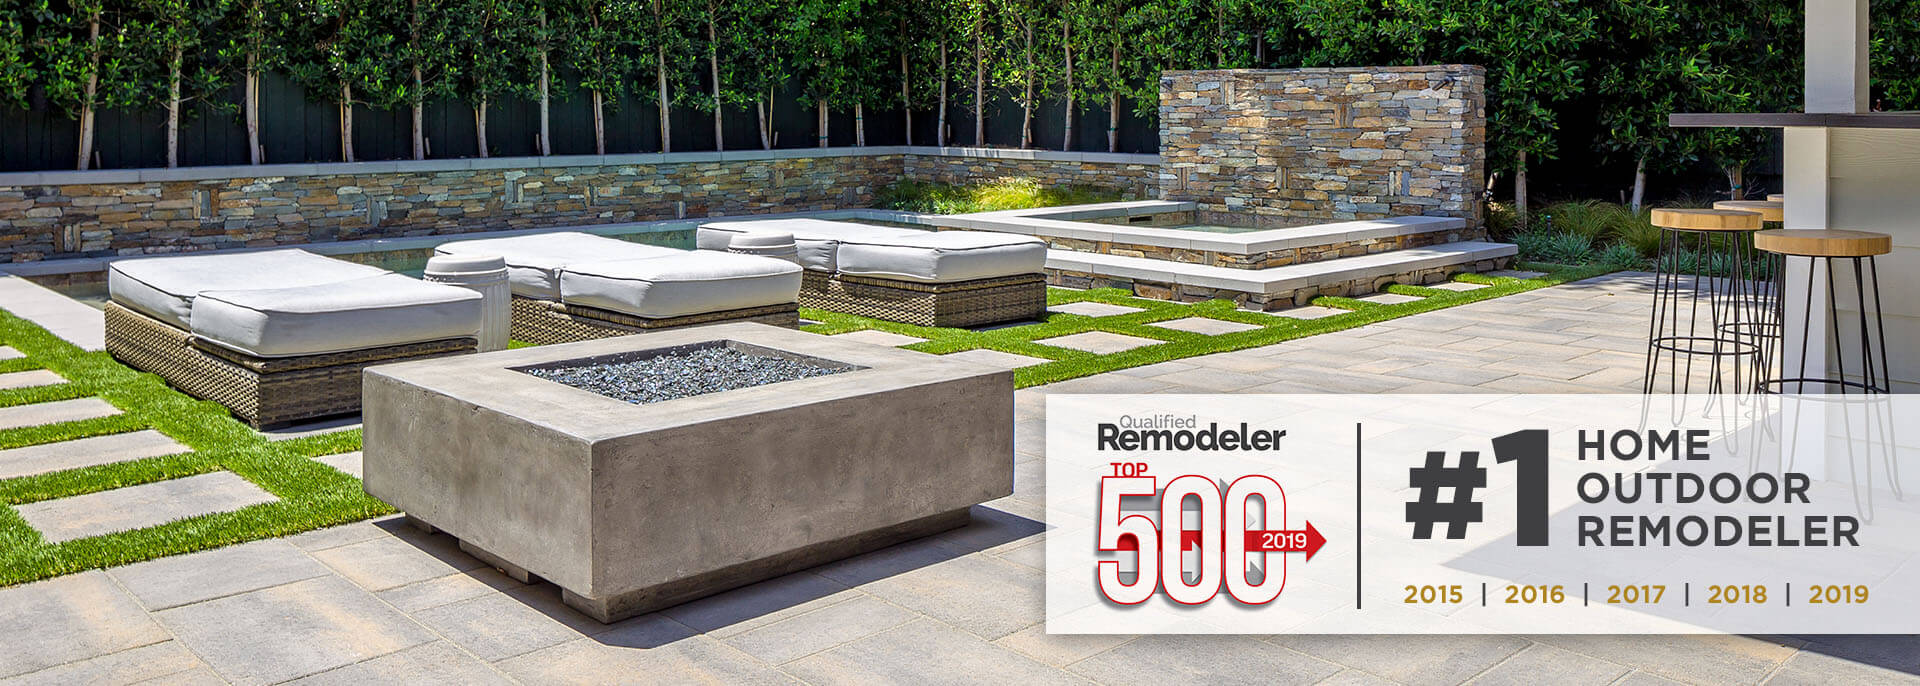 Outdoor Design Award and Recognition